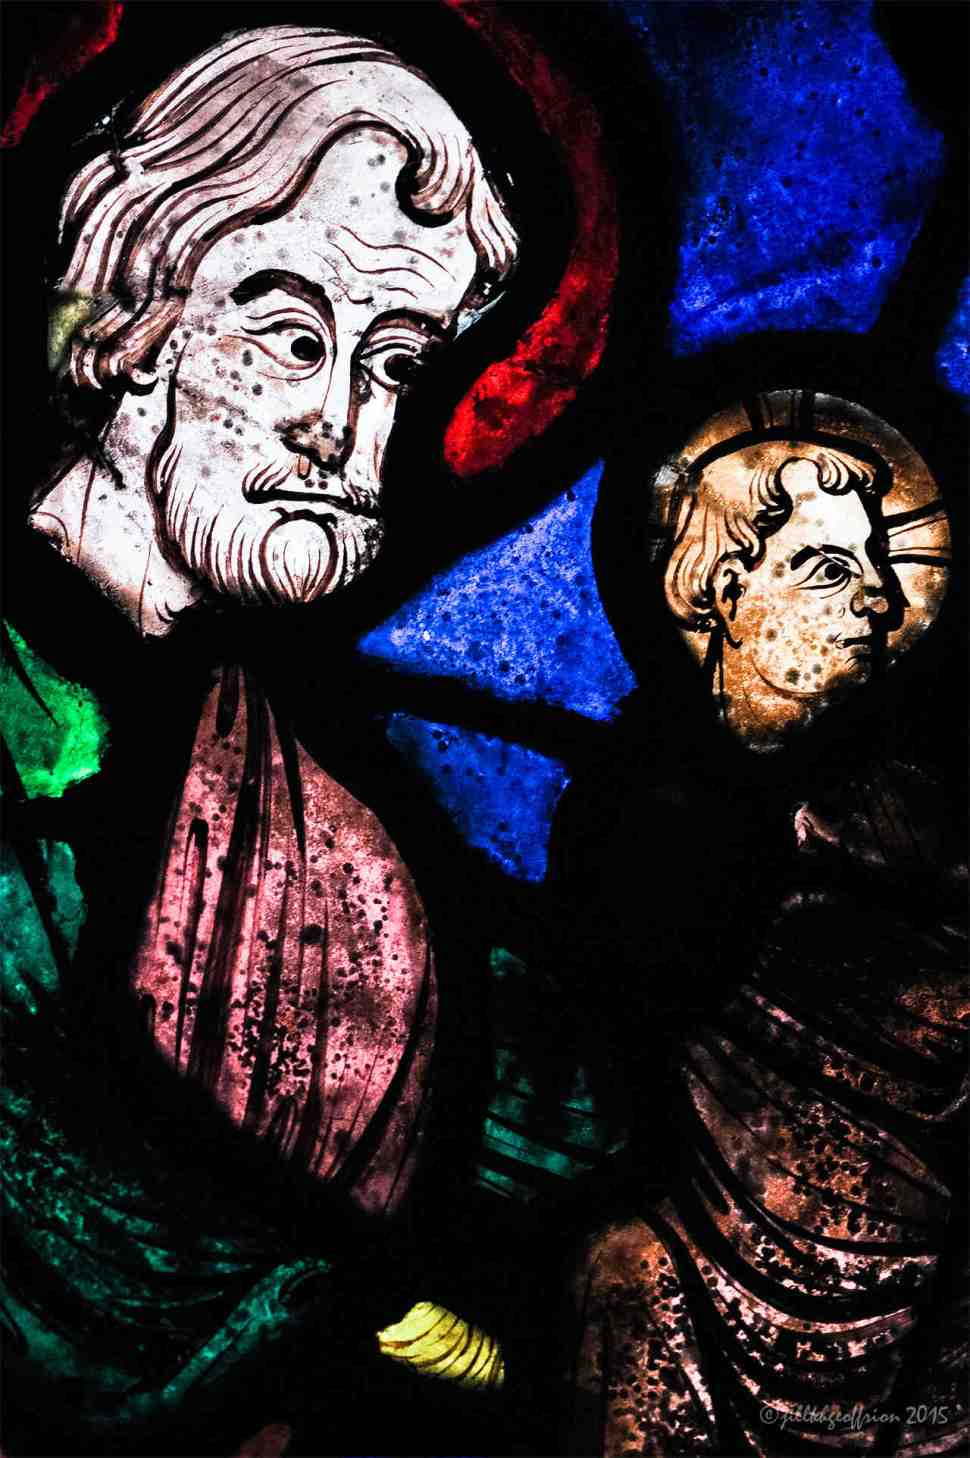 Presentation of Jesus in the Life of Mary window by Jill K H Geoffrion